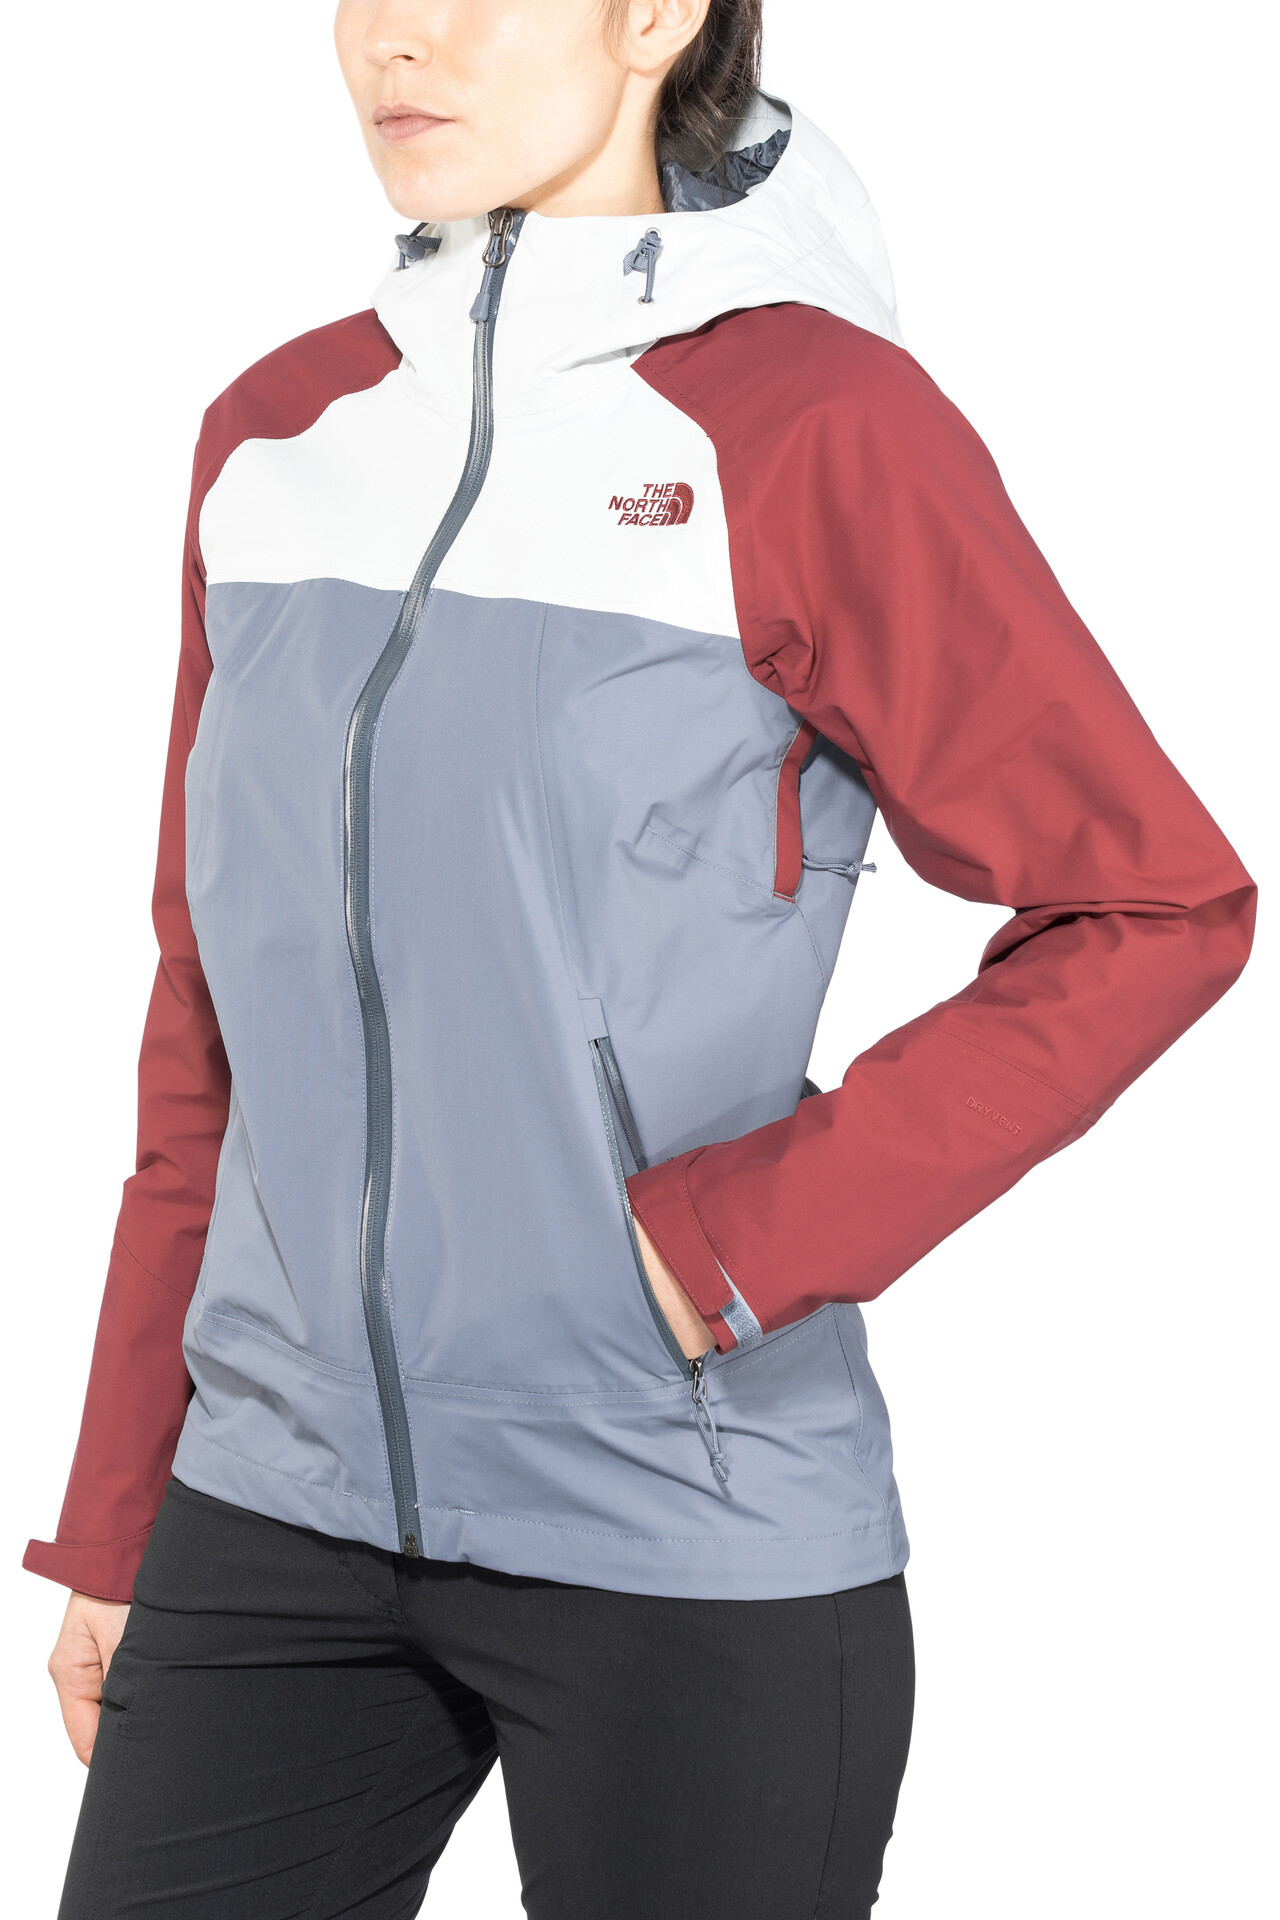 The North Face Stratos women's outdoor jacket (greyred)